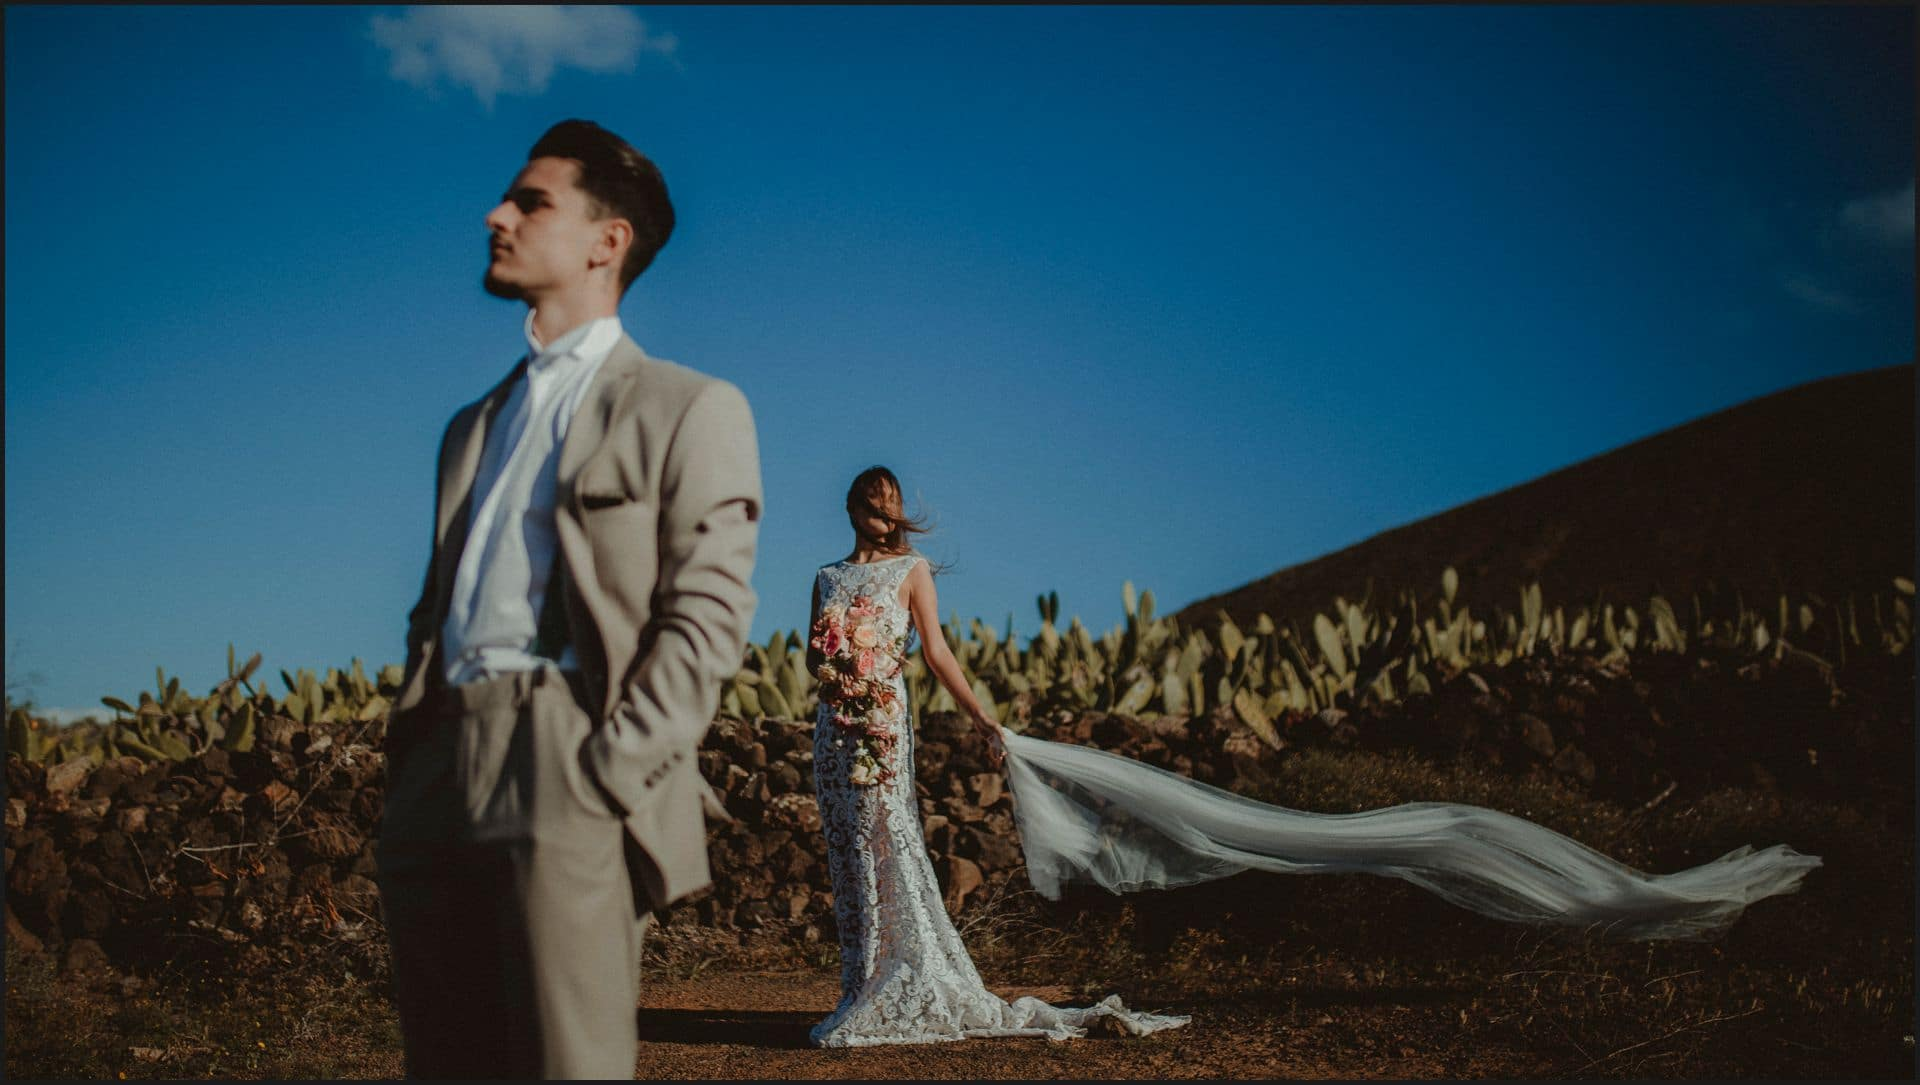 lanzarote, wedding, elopement, bride, groom, wind, veil, blue sky